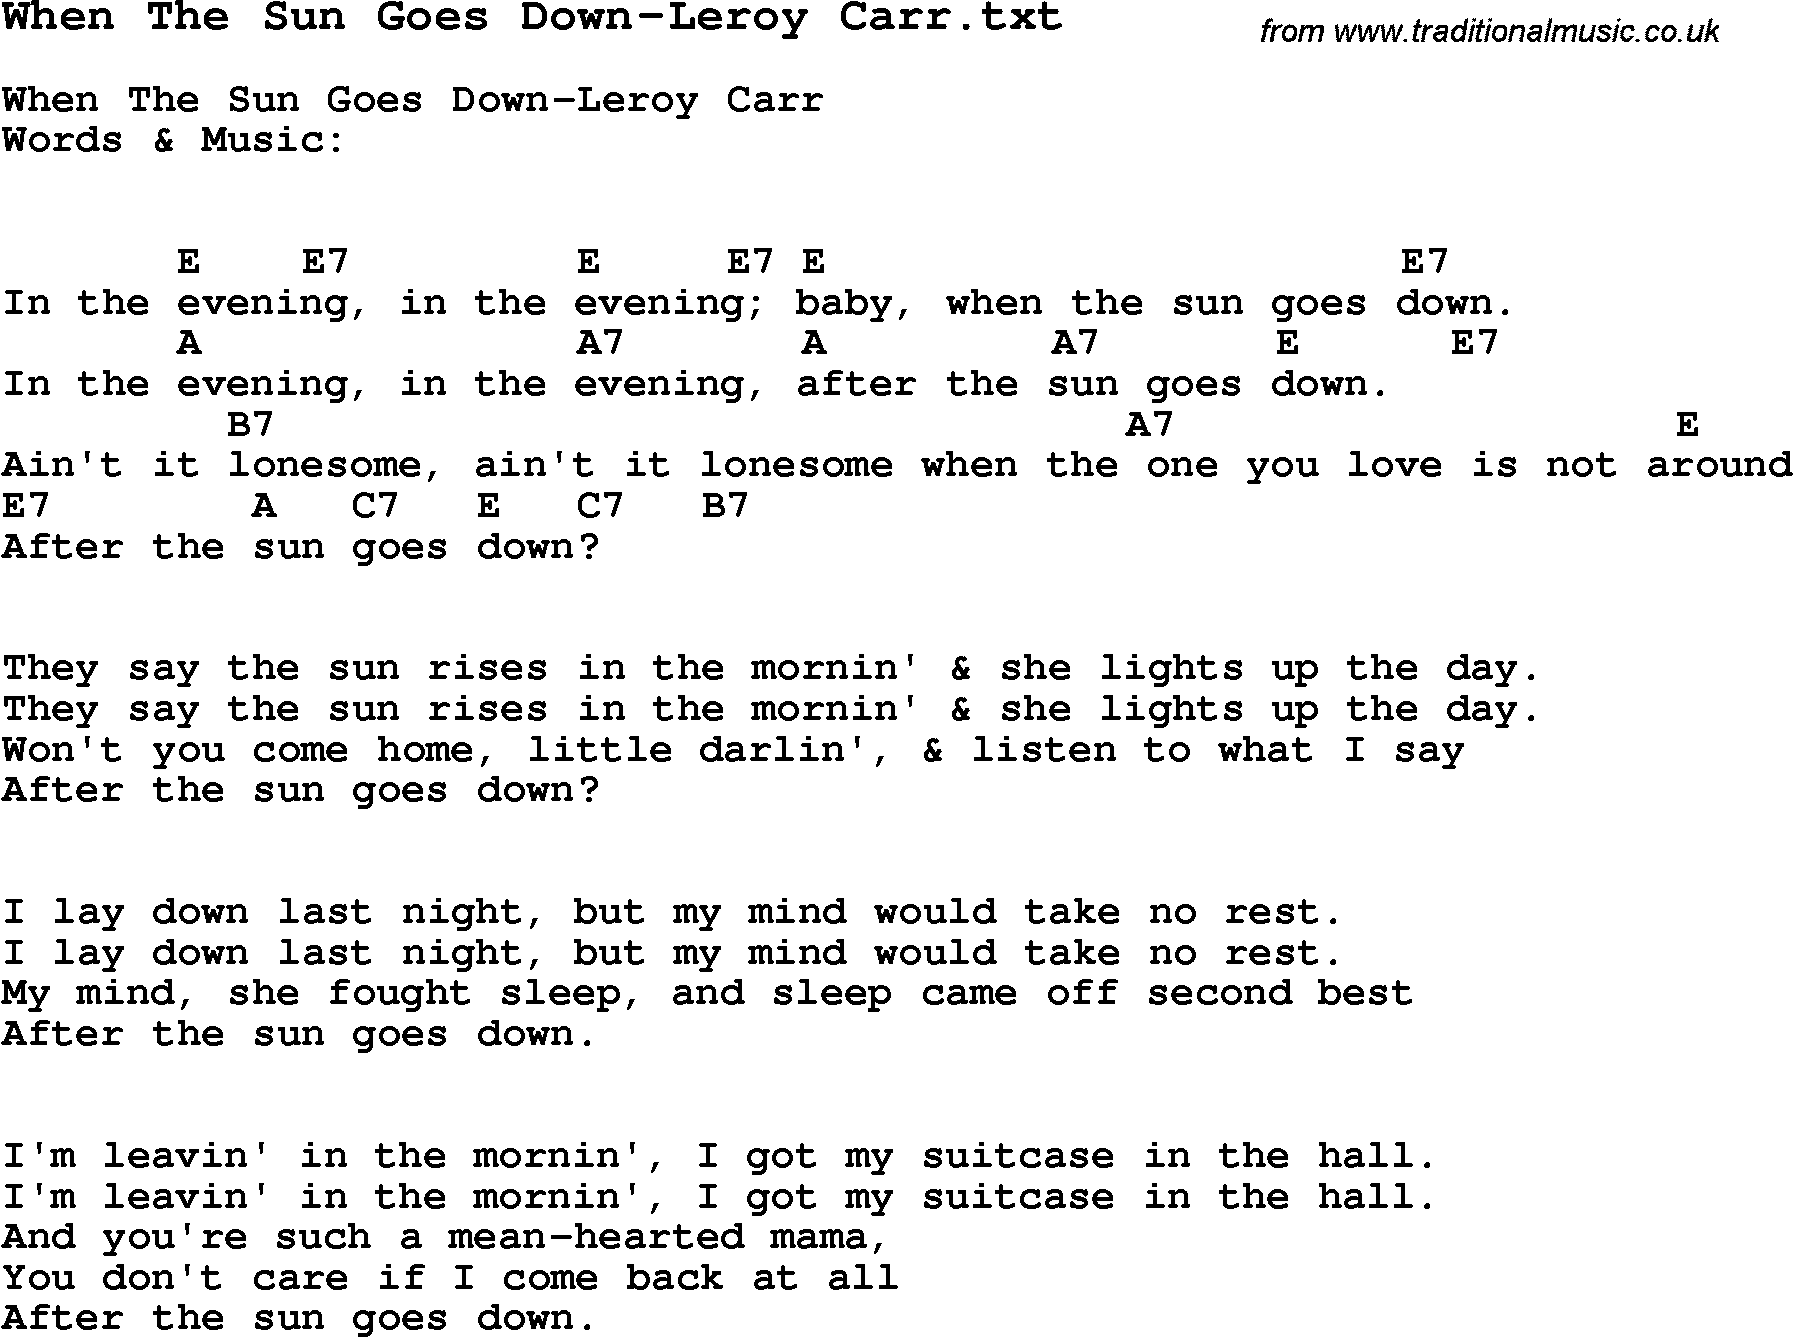 Jazz song when the sun goes down leroy carr with chords tabs jazz song from top bands and vocal artists with chords tabs and lyrics when hexwebz Image collections